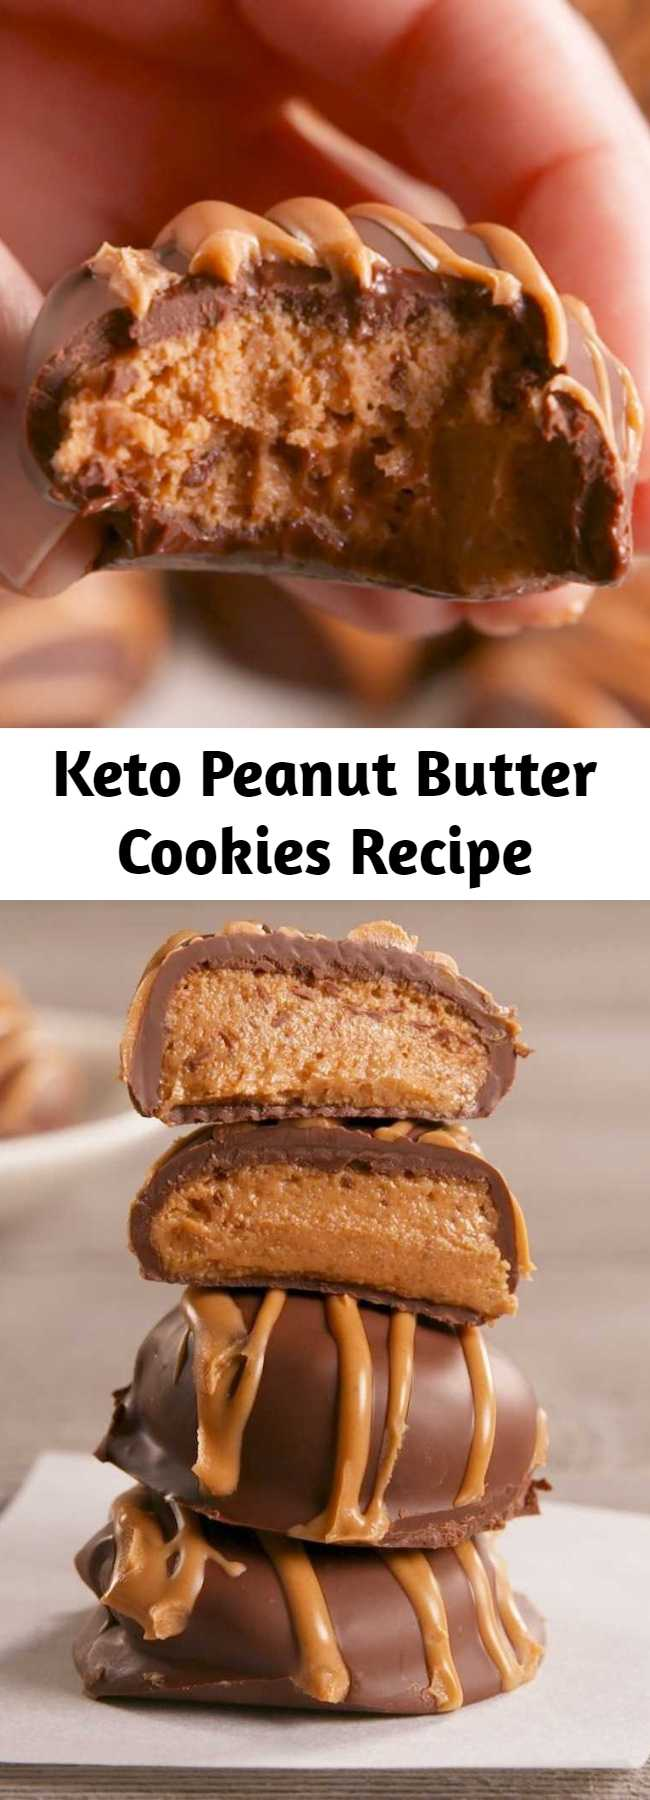 Keto Peanut Butter Cookies Recipe - A no-bake cookie that tastes like the best homemade peanut-butter cup you've ever had! Forget the guilt and have all the fun—we've re-edited this recipe to call for keto-friendly ingredients! #food #easyrecipe #keto #healthyeating #cleaneating